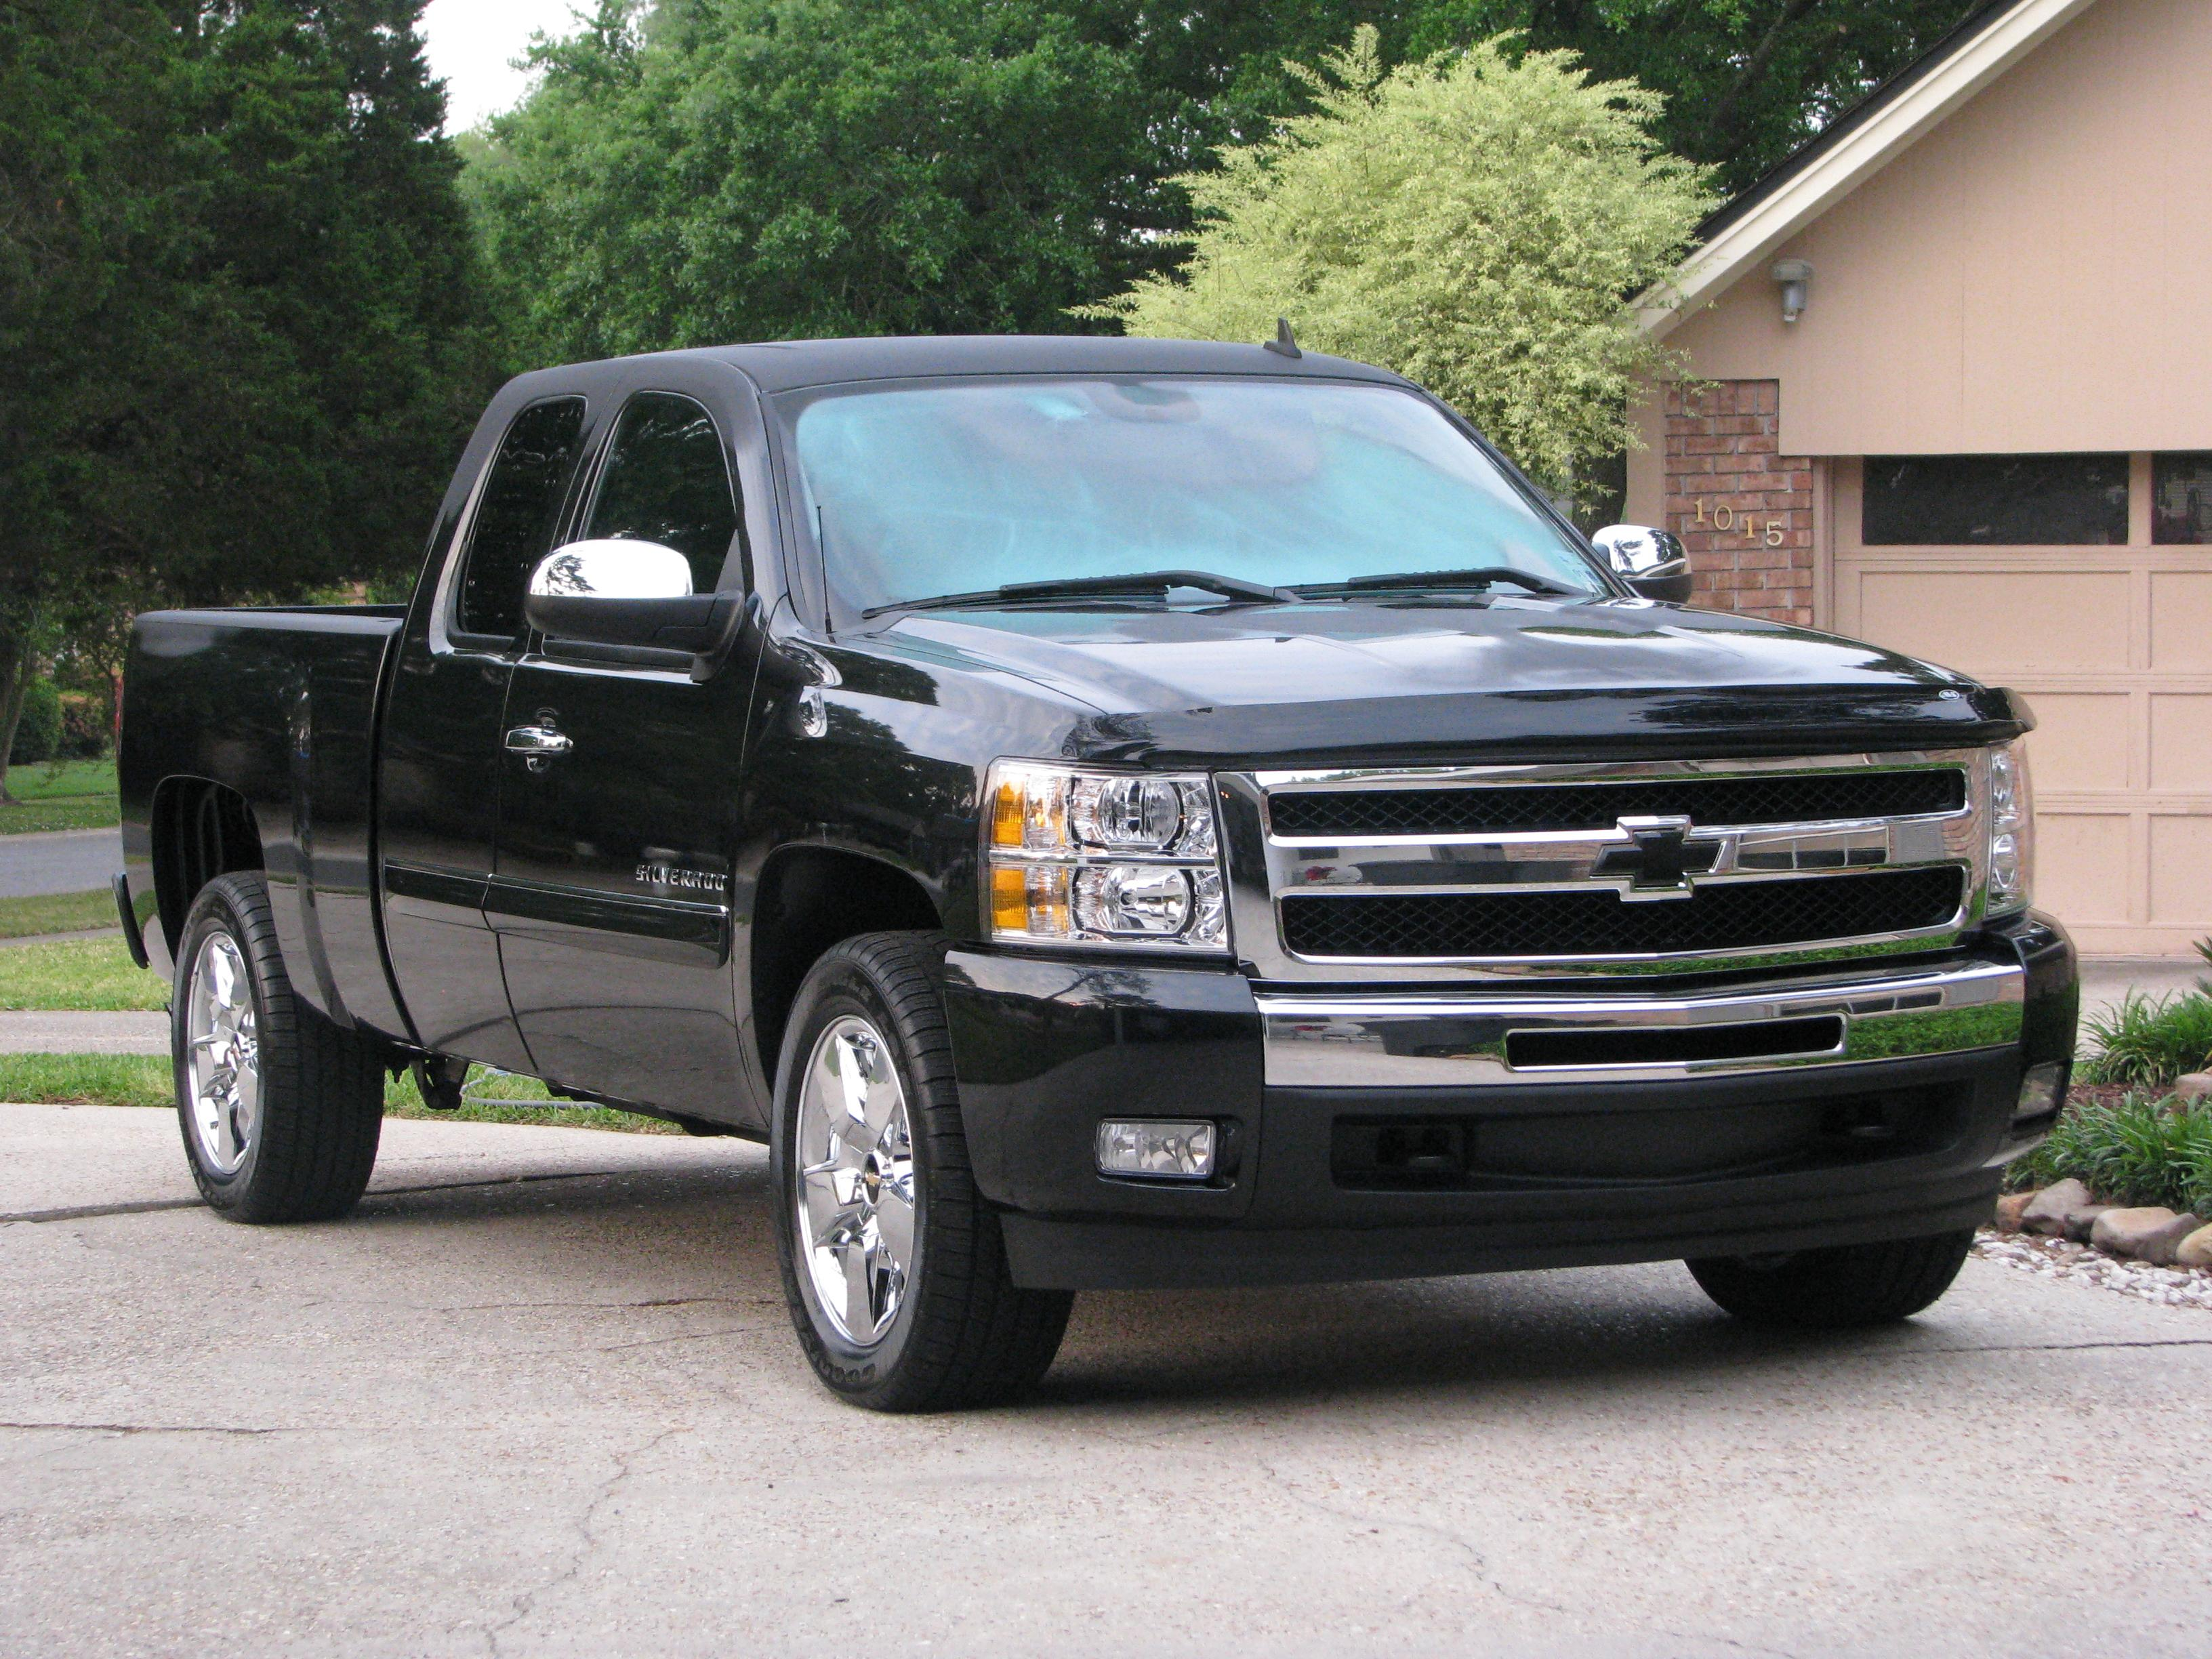 elefntkpr 2010 chevrolet silverado 1500 extended cab specs photos modification info at cardomain. Black Bedroom Furniture Sets. Home Design Ideas